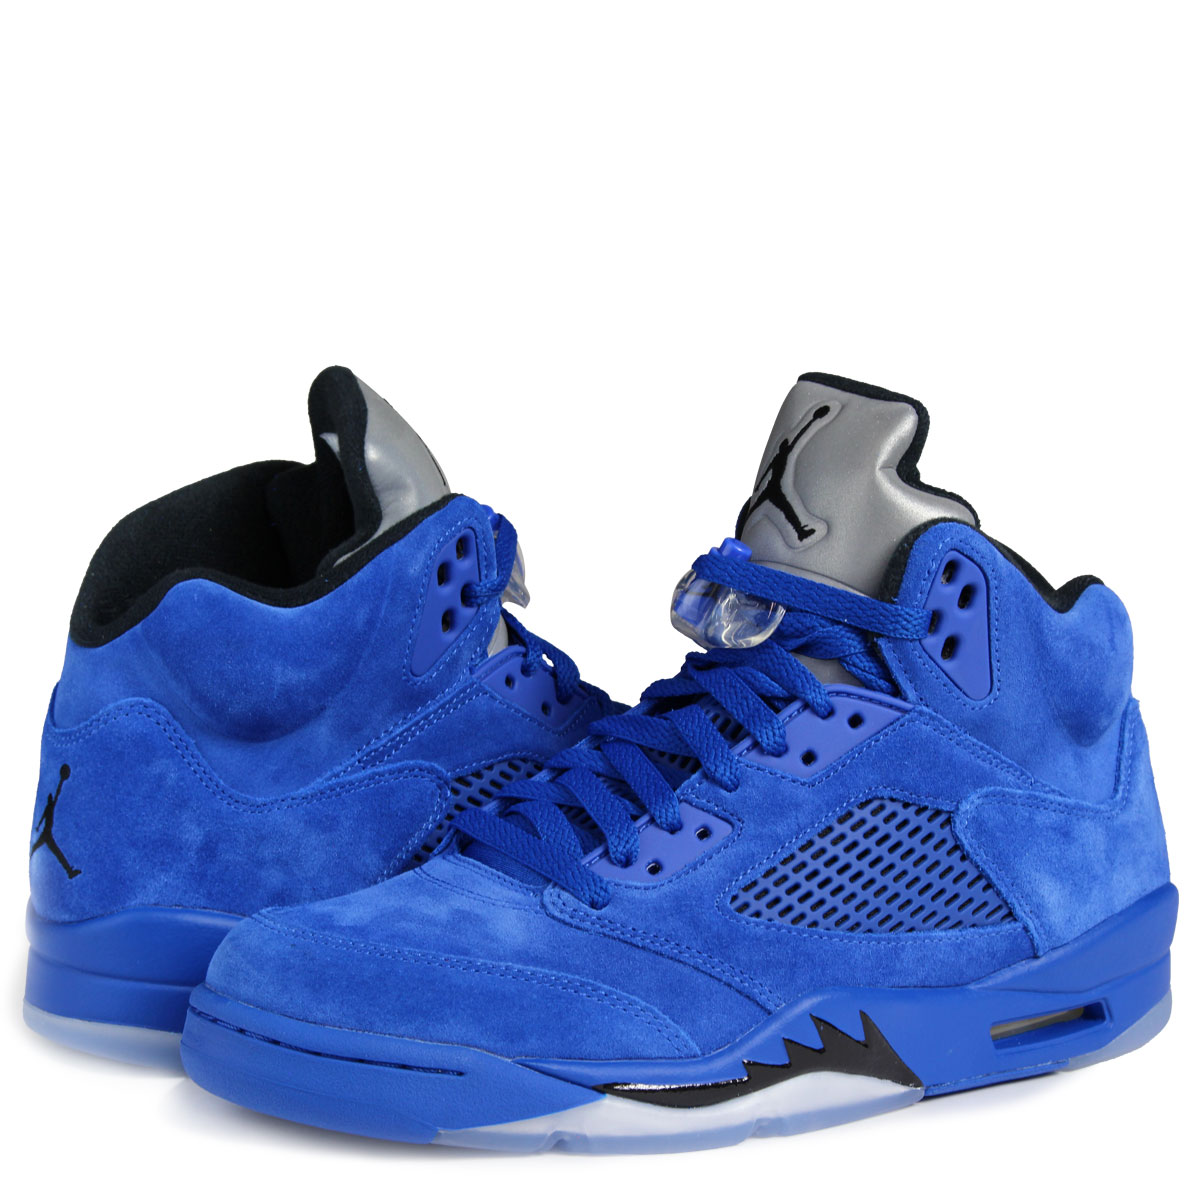 Whats up Sports  NIKE AIR JORDAN 5 RETRO BLUE SUEDE Nike Air Jordan 5  nostalgic sneakers 136 049c31d5e